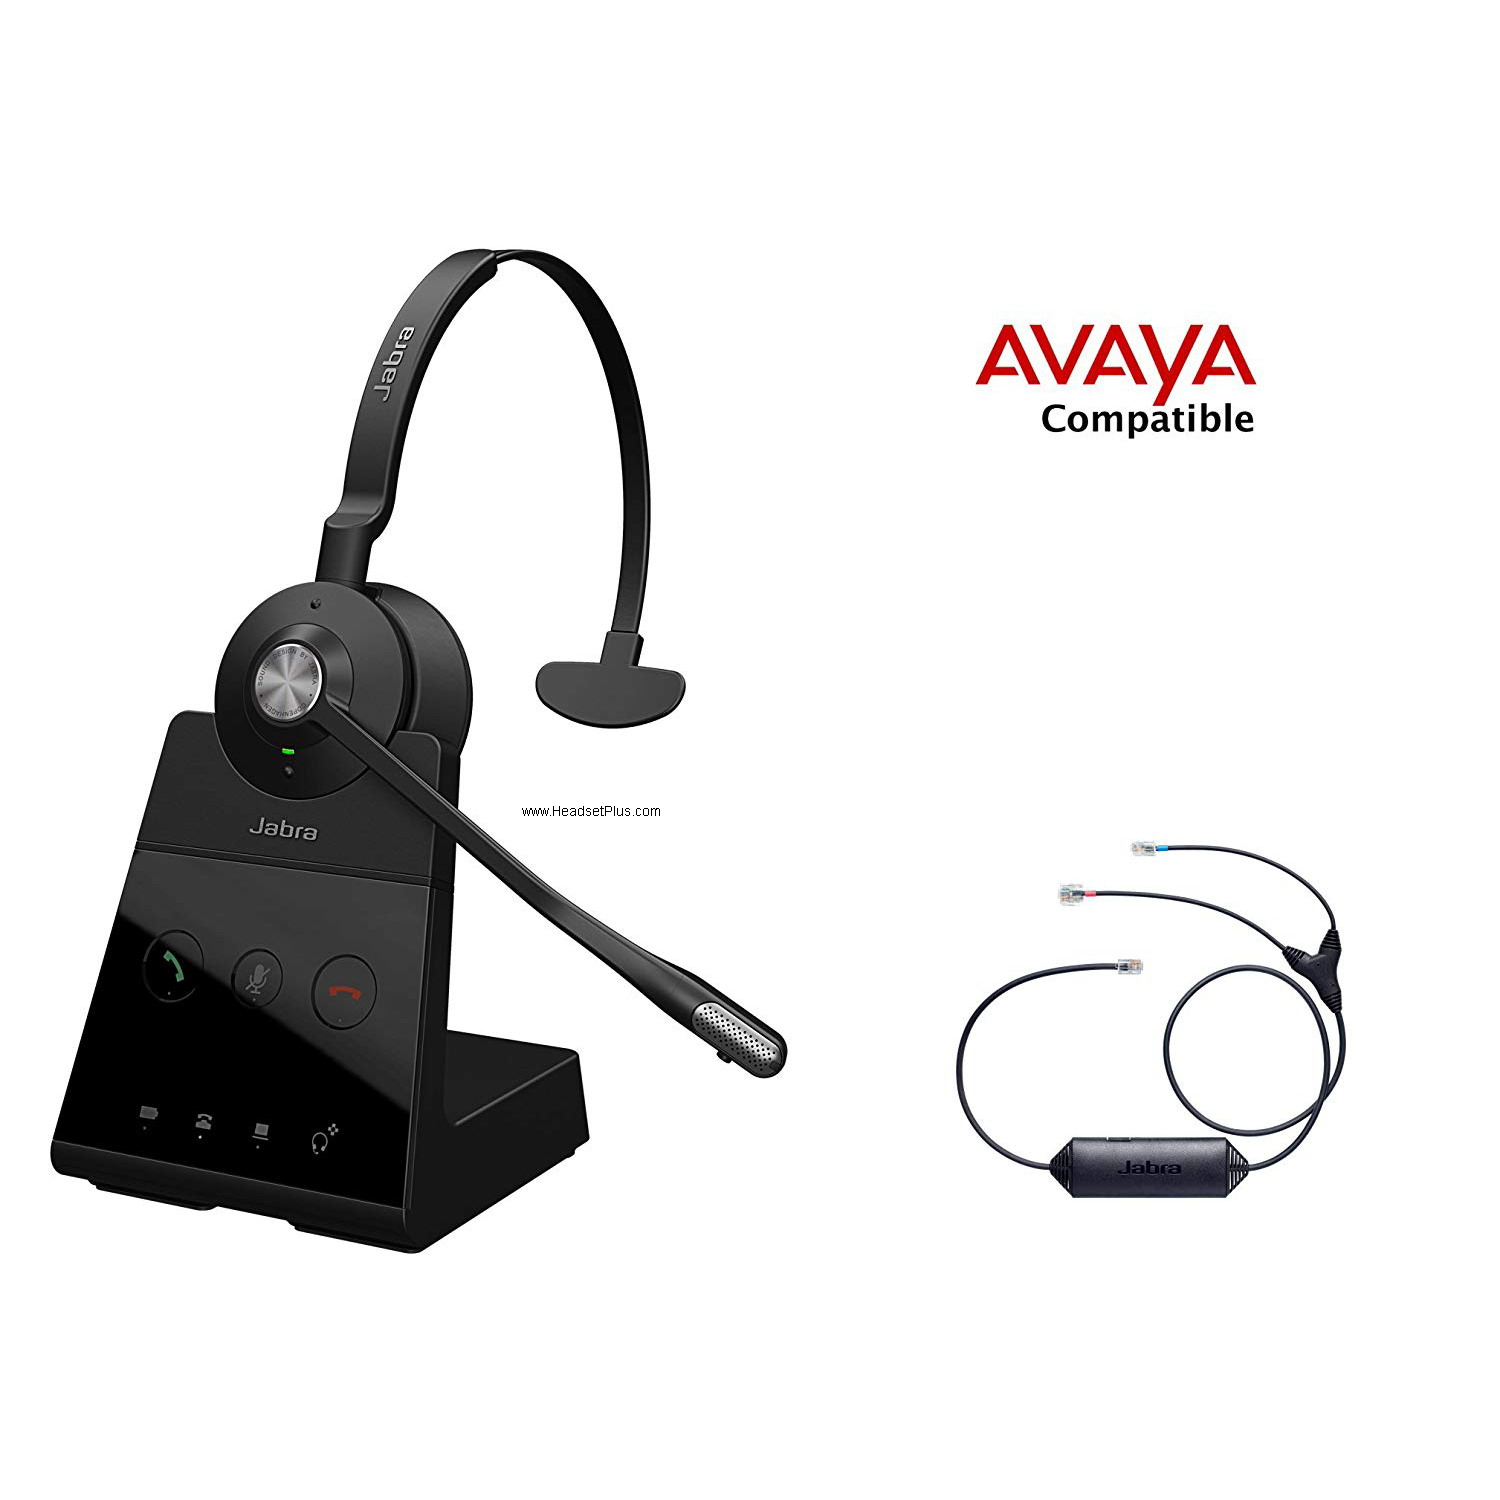 Jabra Engage 65 Mono+EHS Avaya 1400 9400 9500 9600 Phones